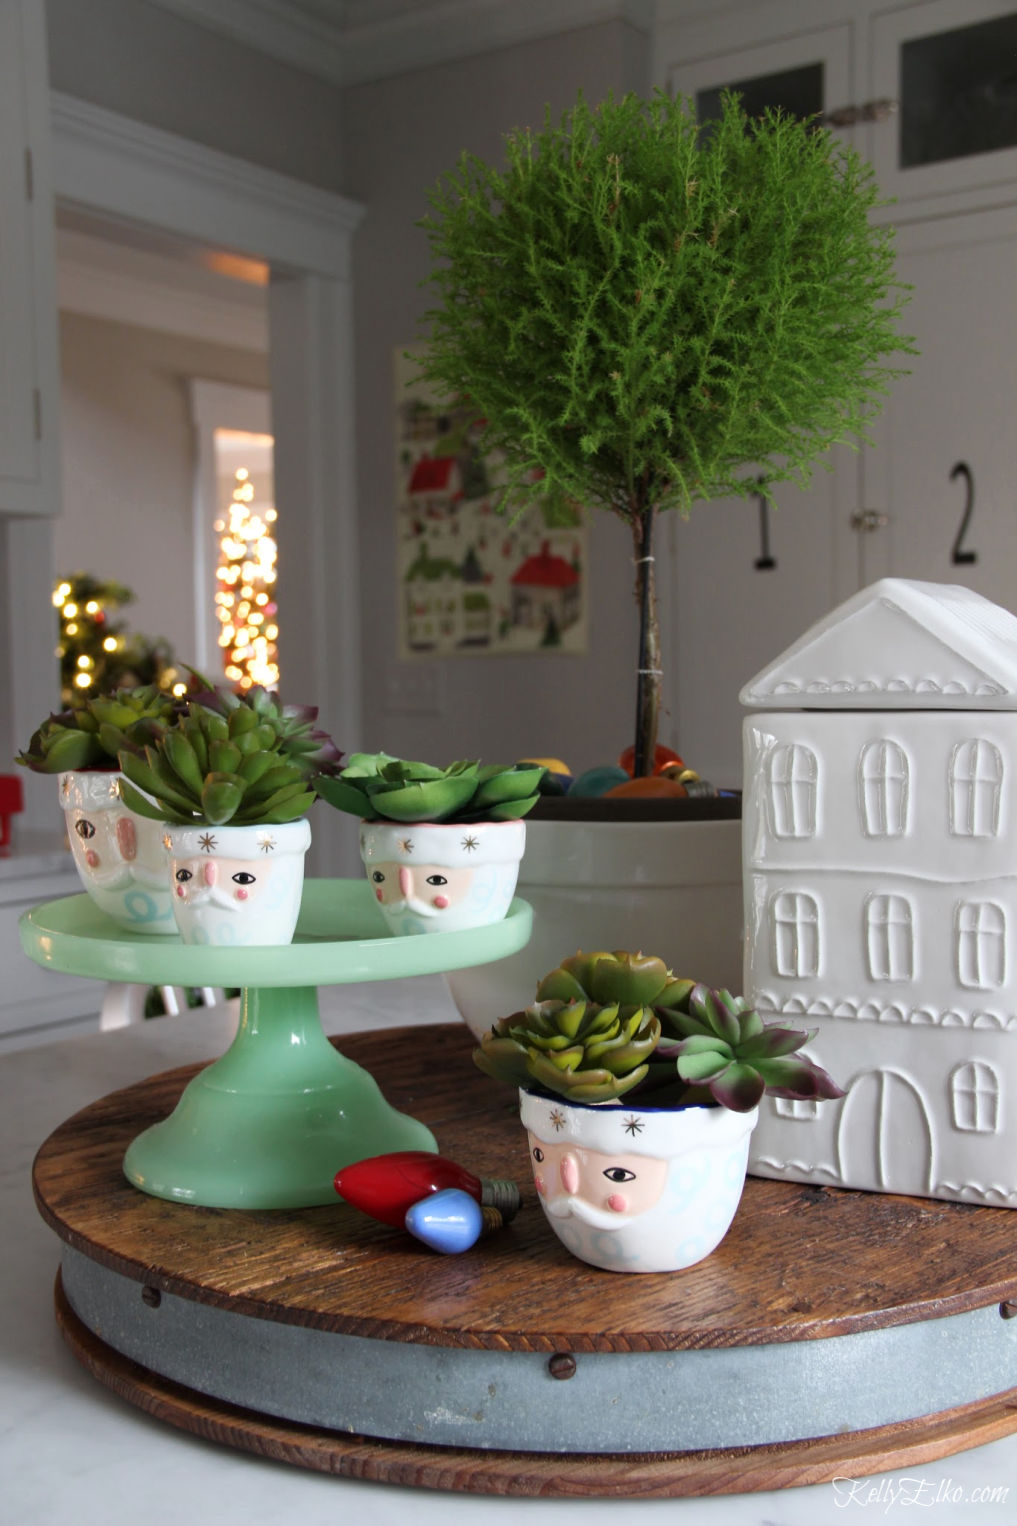 Christmas in the Kitchen - love the Santa measuring cups and house cookie jar kellyelko.com #christmas #christmaskitchen #christmasdecor #christmasdecorations #topiary #vintagechristmas #kellyelko